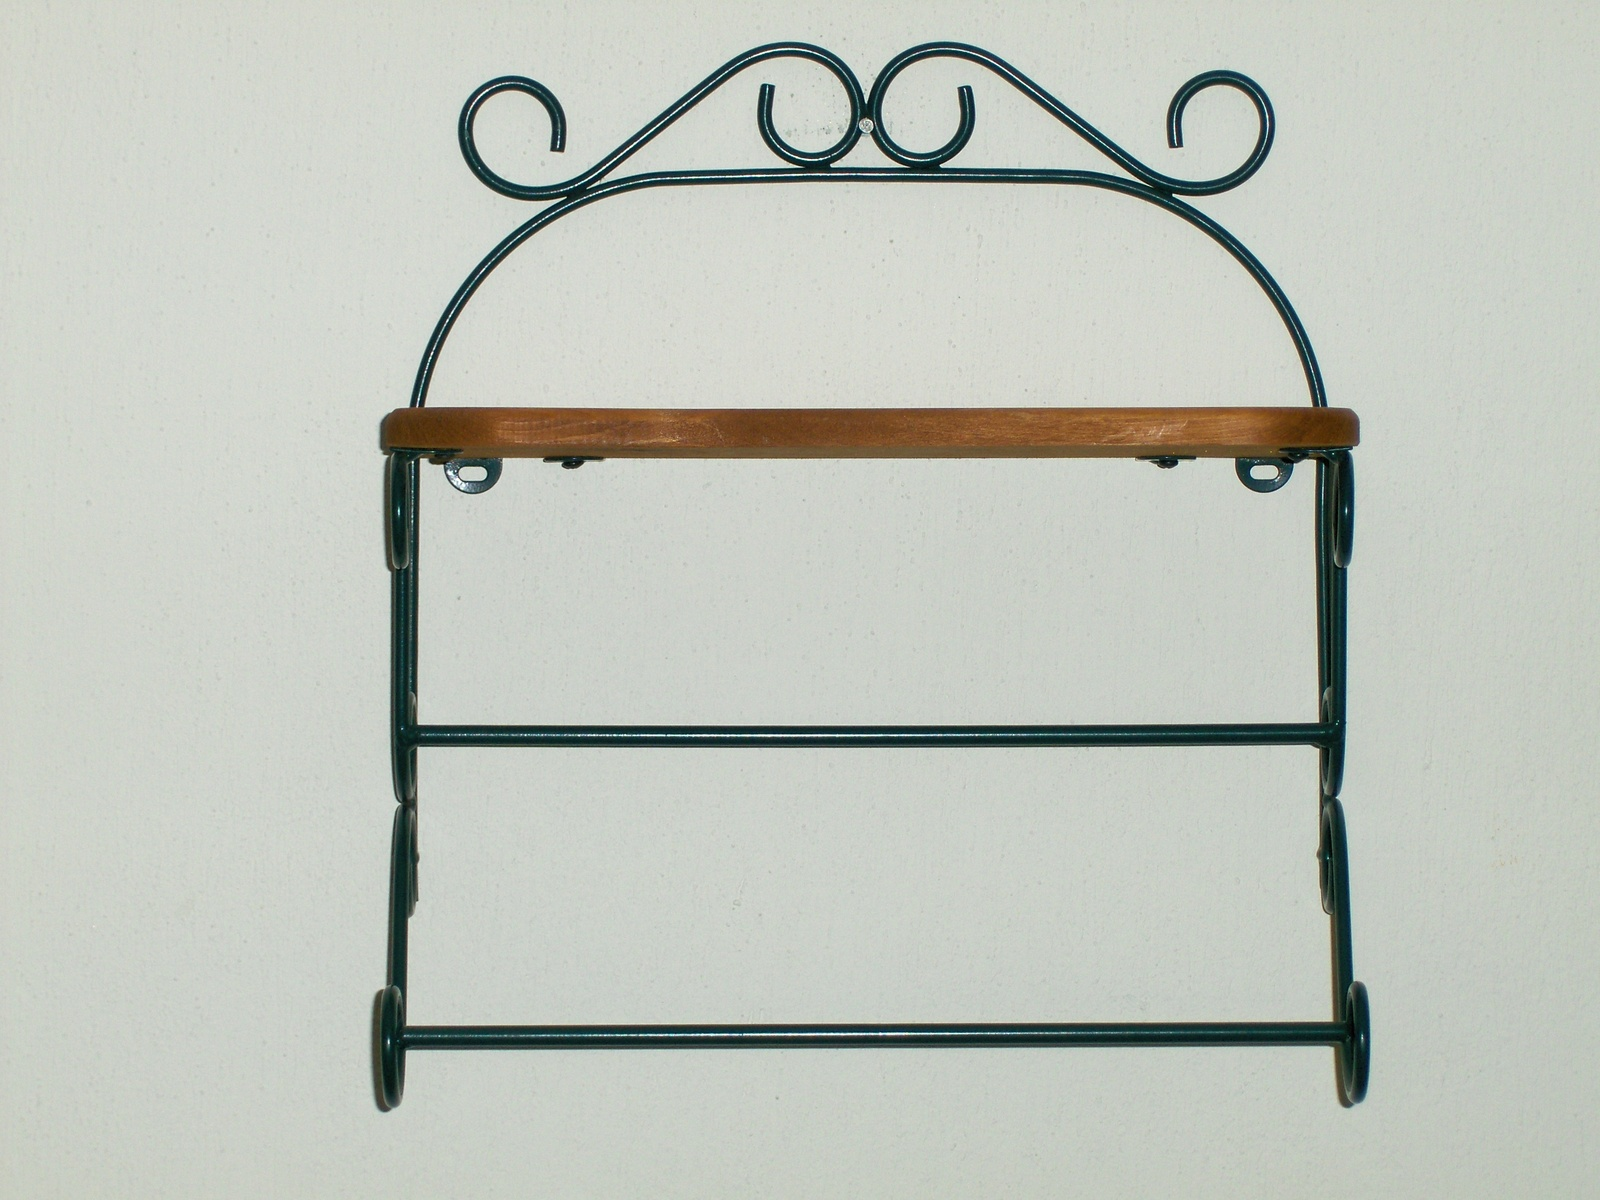 Wonderful image of Homco Country Oak Wood Hunter Green Wrought Iron Metal Wall Shelf Home  with #704824 color and 1600x1200 pixels